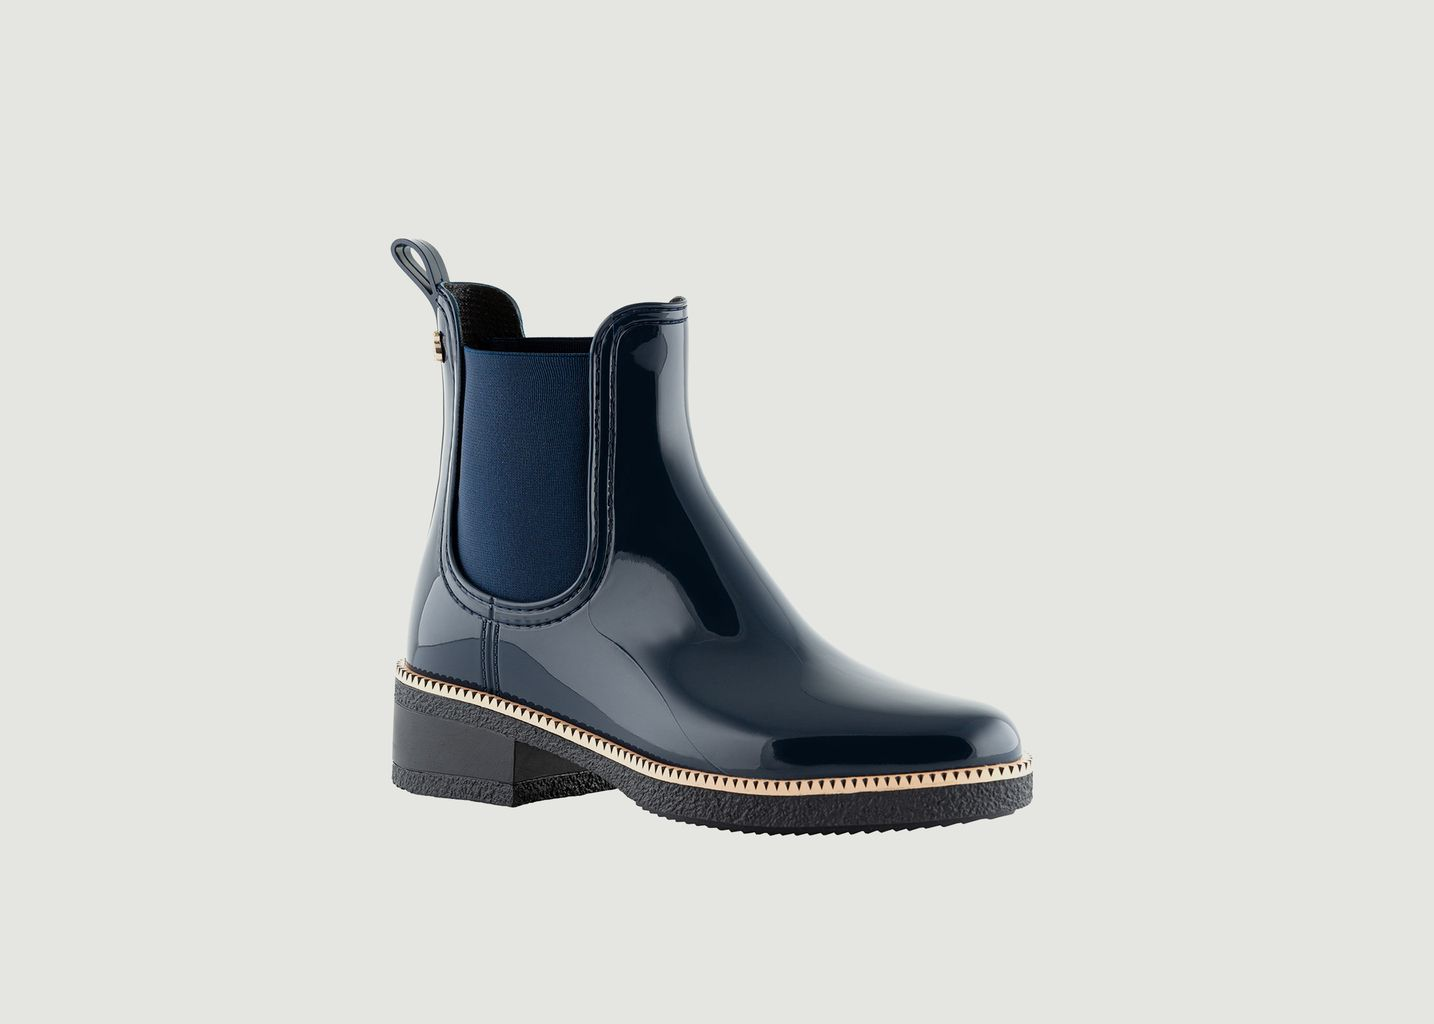 Bottines de pluie Ava - Lemon Jelly